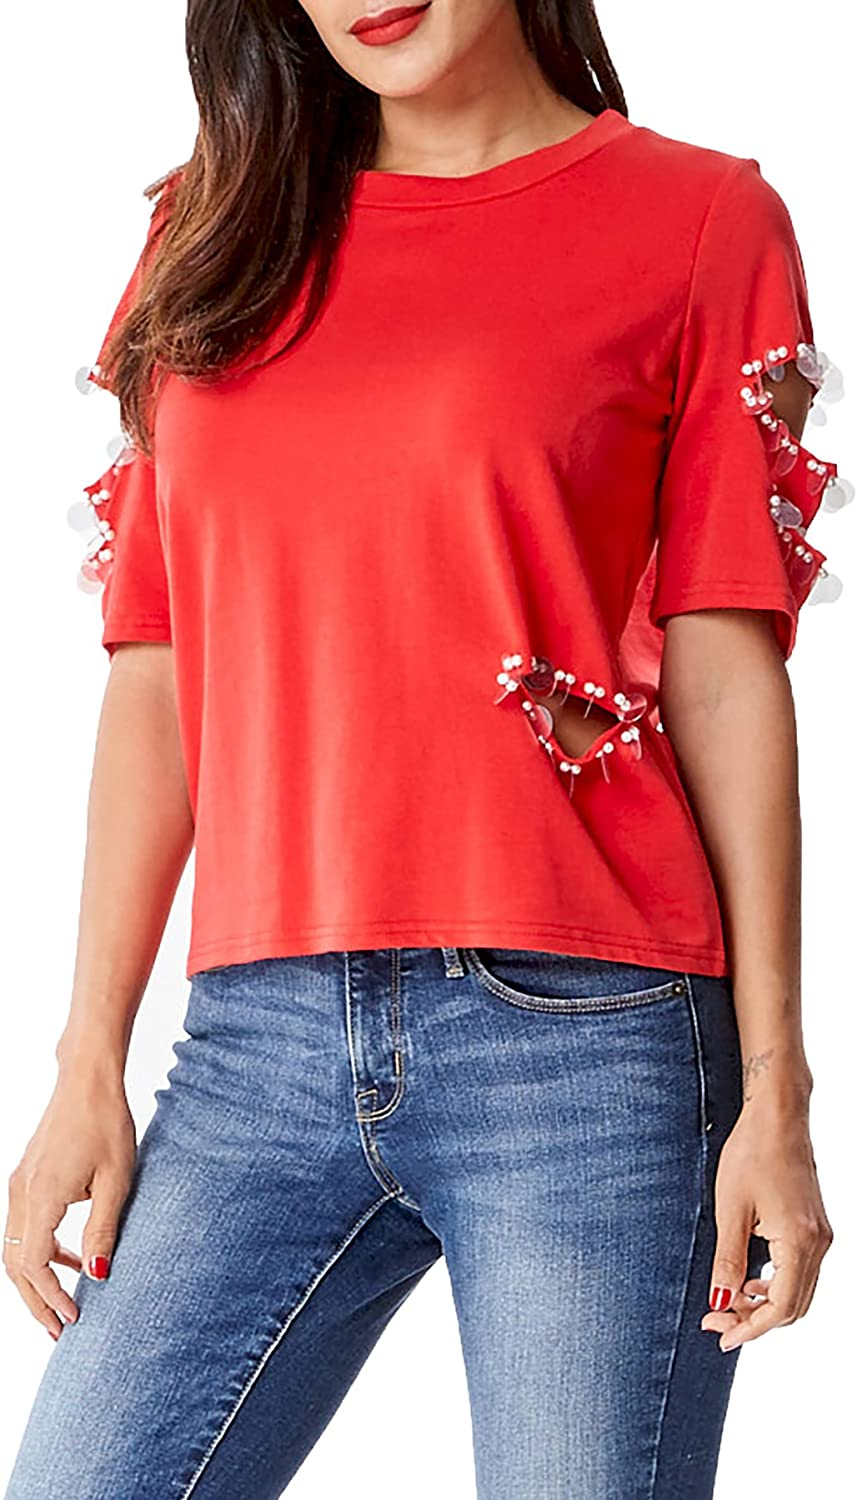 In2you Pearl Beaded Ripped Sweat Shirt